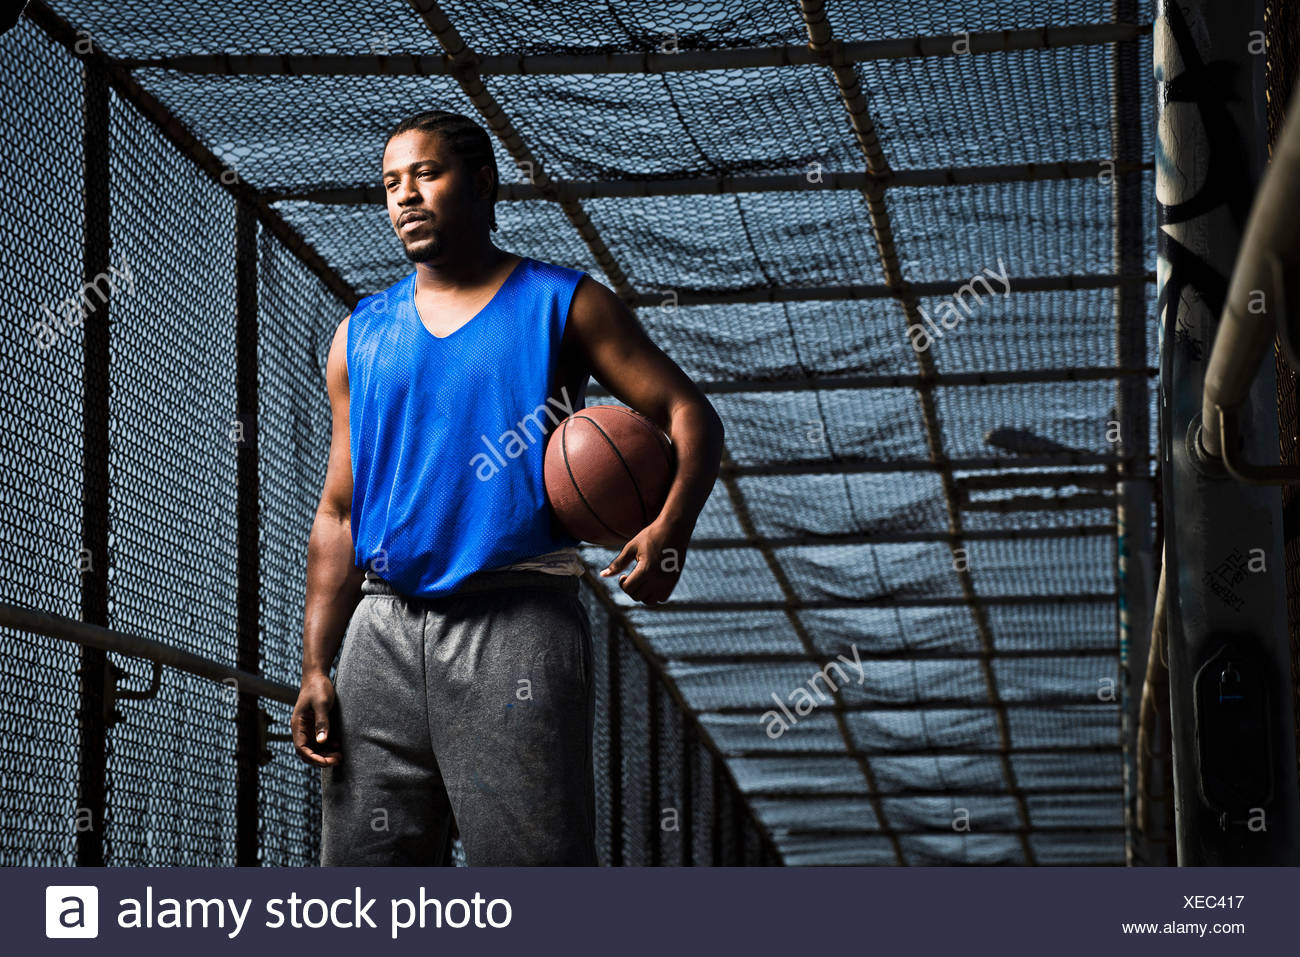 A young man poses with a basketball on a bridge. - Stock Image